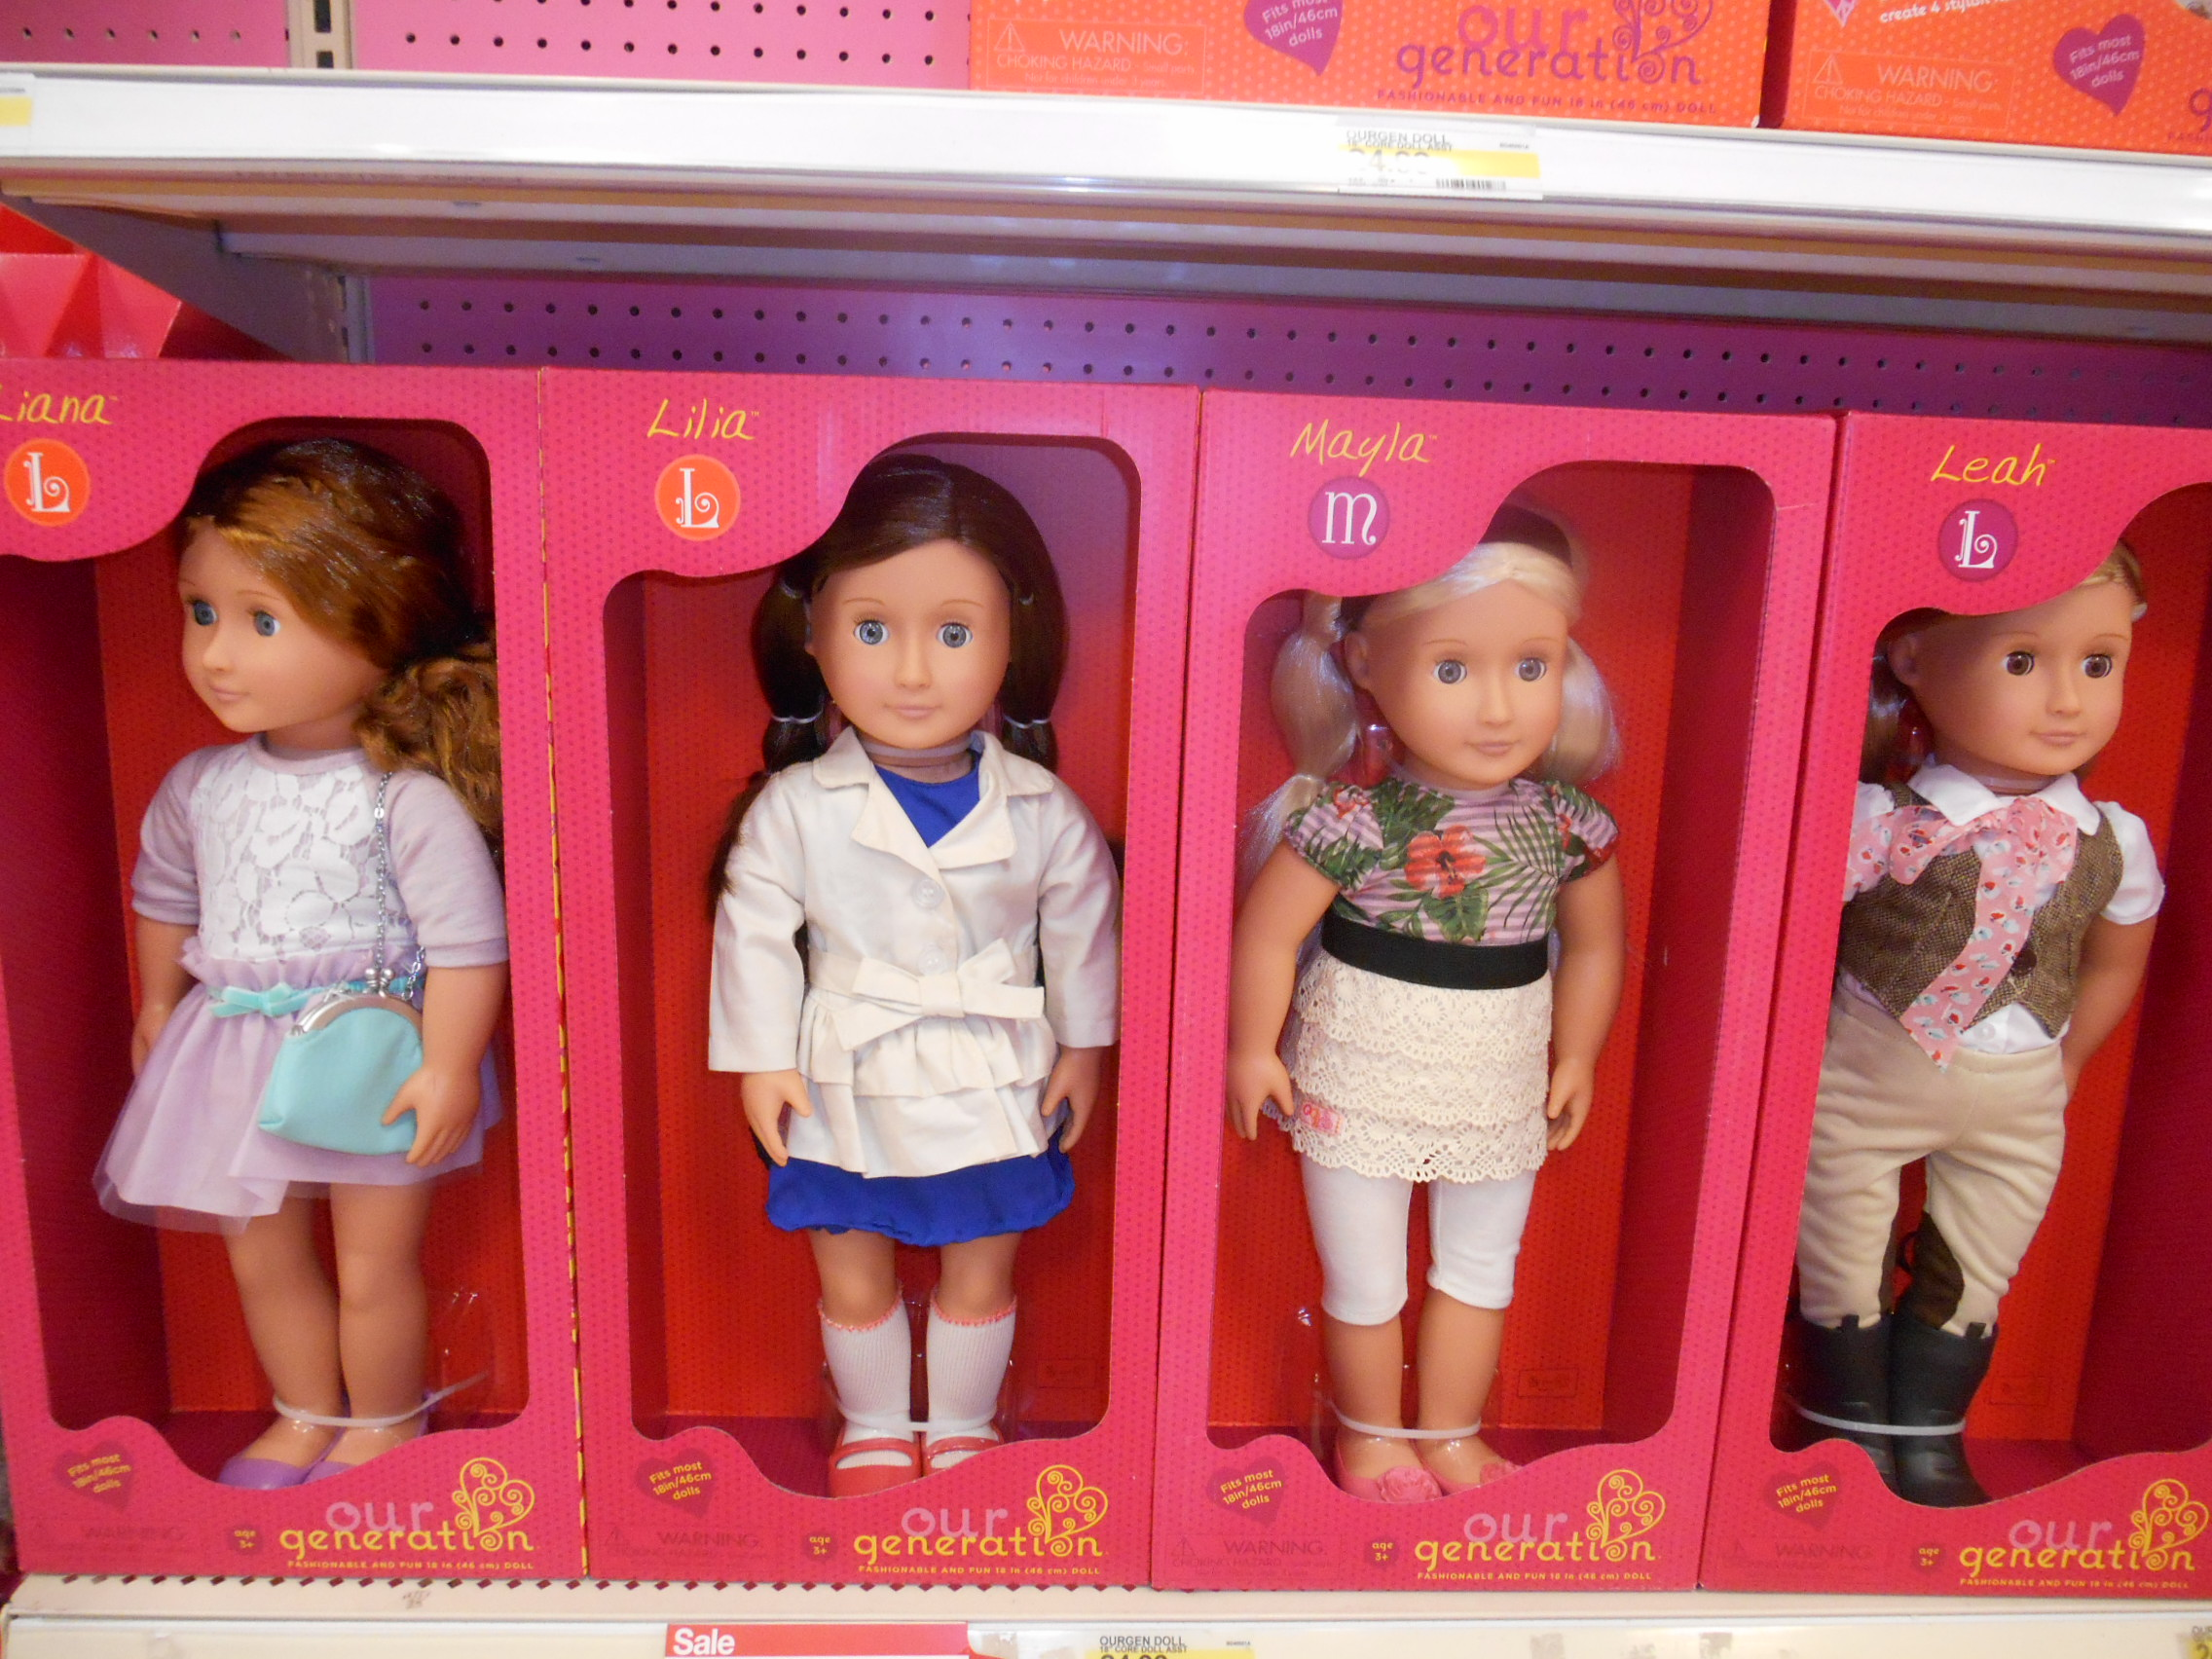 New Our Generation Items Dolltastically Fun